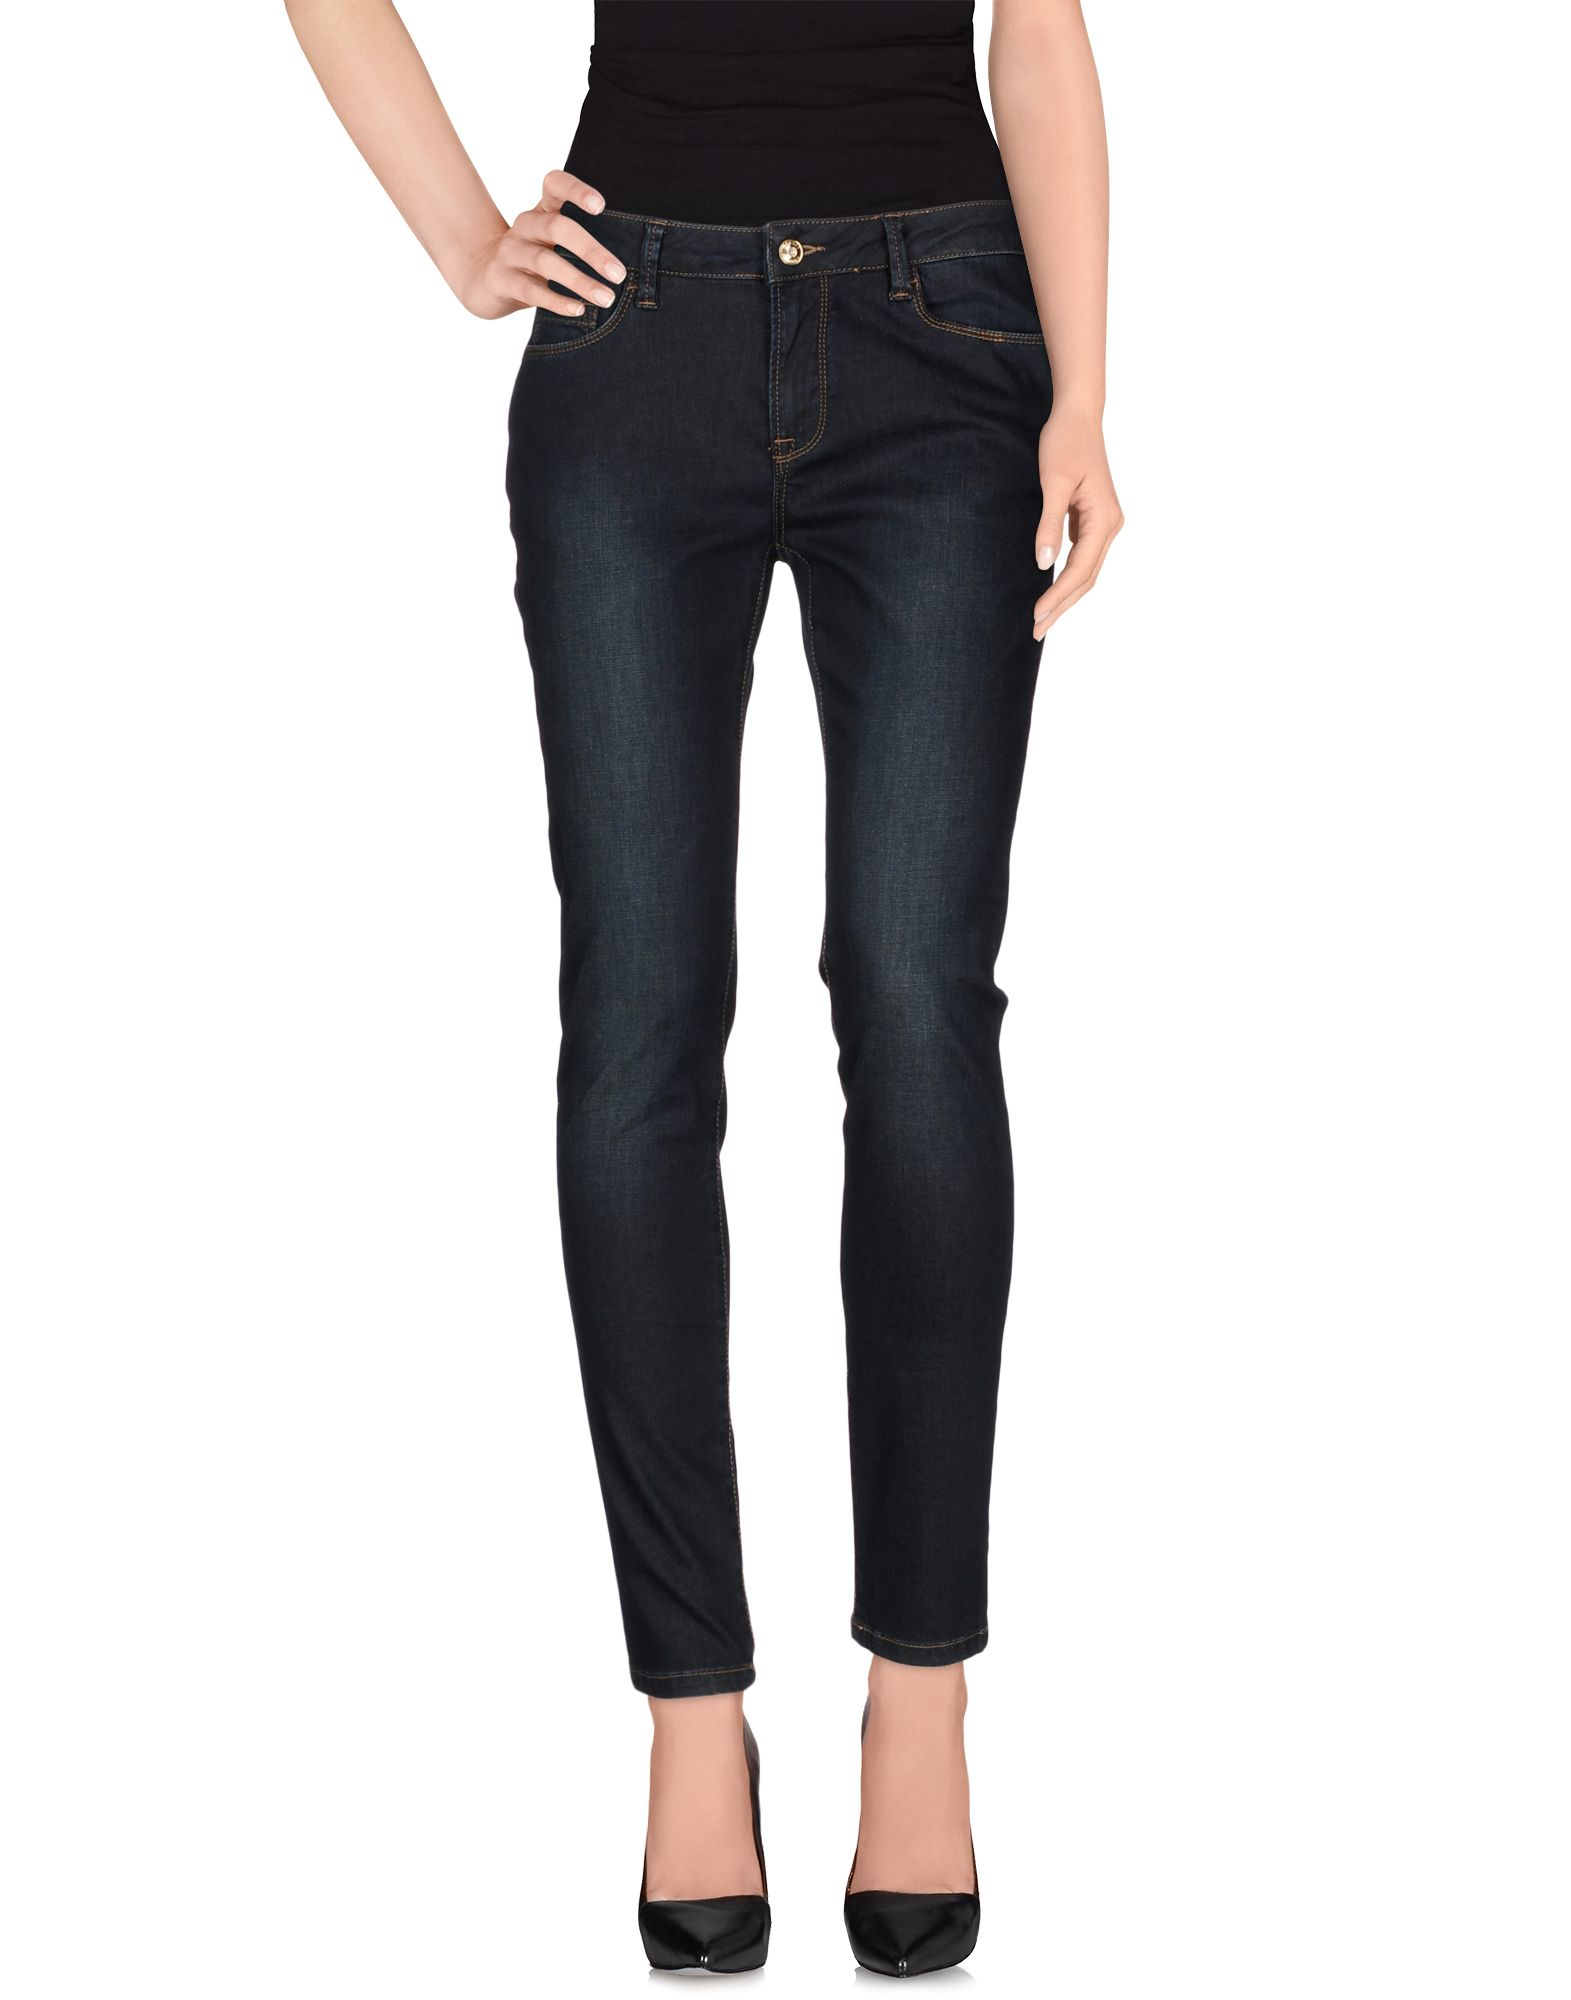 Unique  Jeans Amp Pants Pants Guess Pants Guess Pants In 322175 For Women